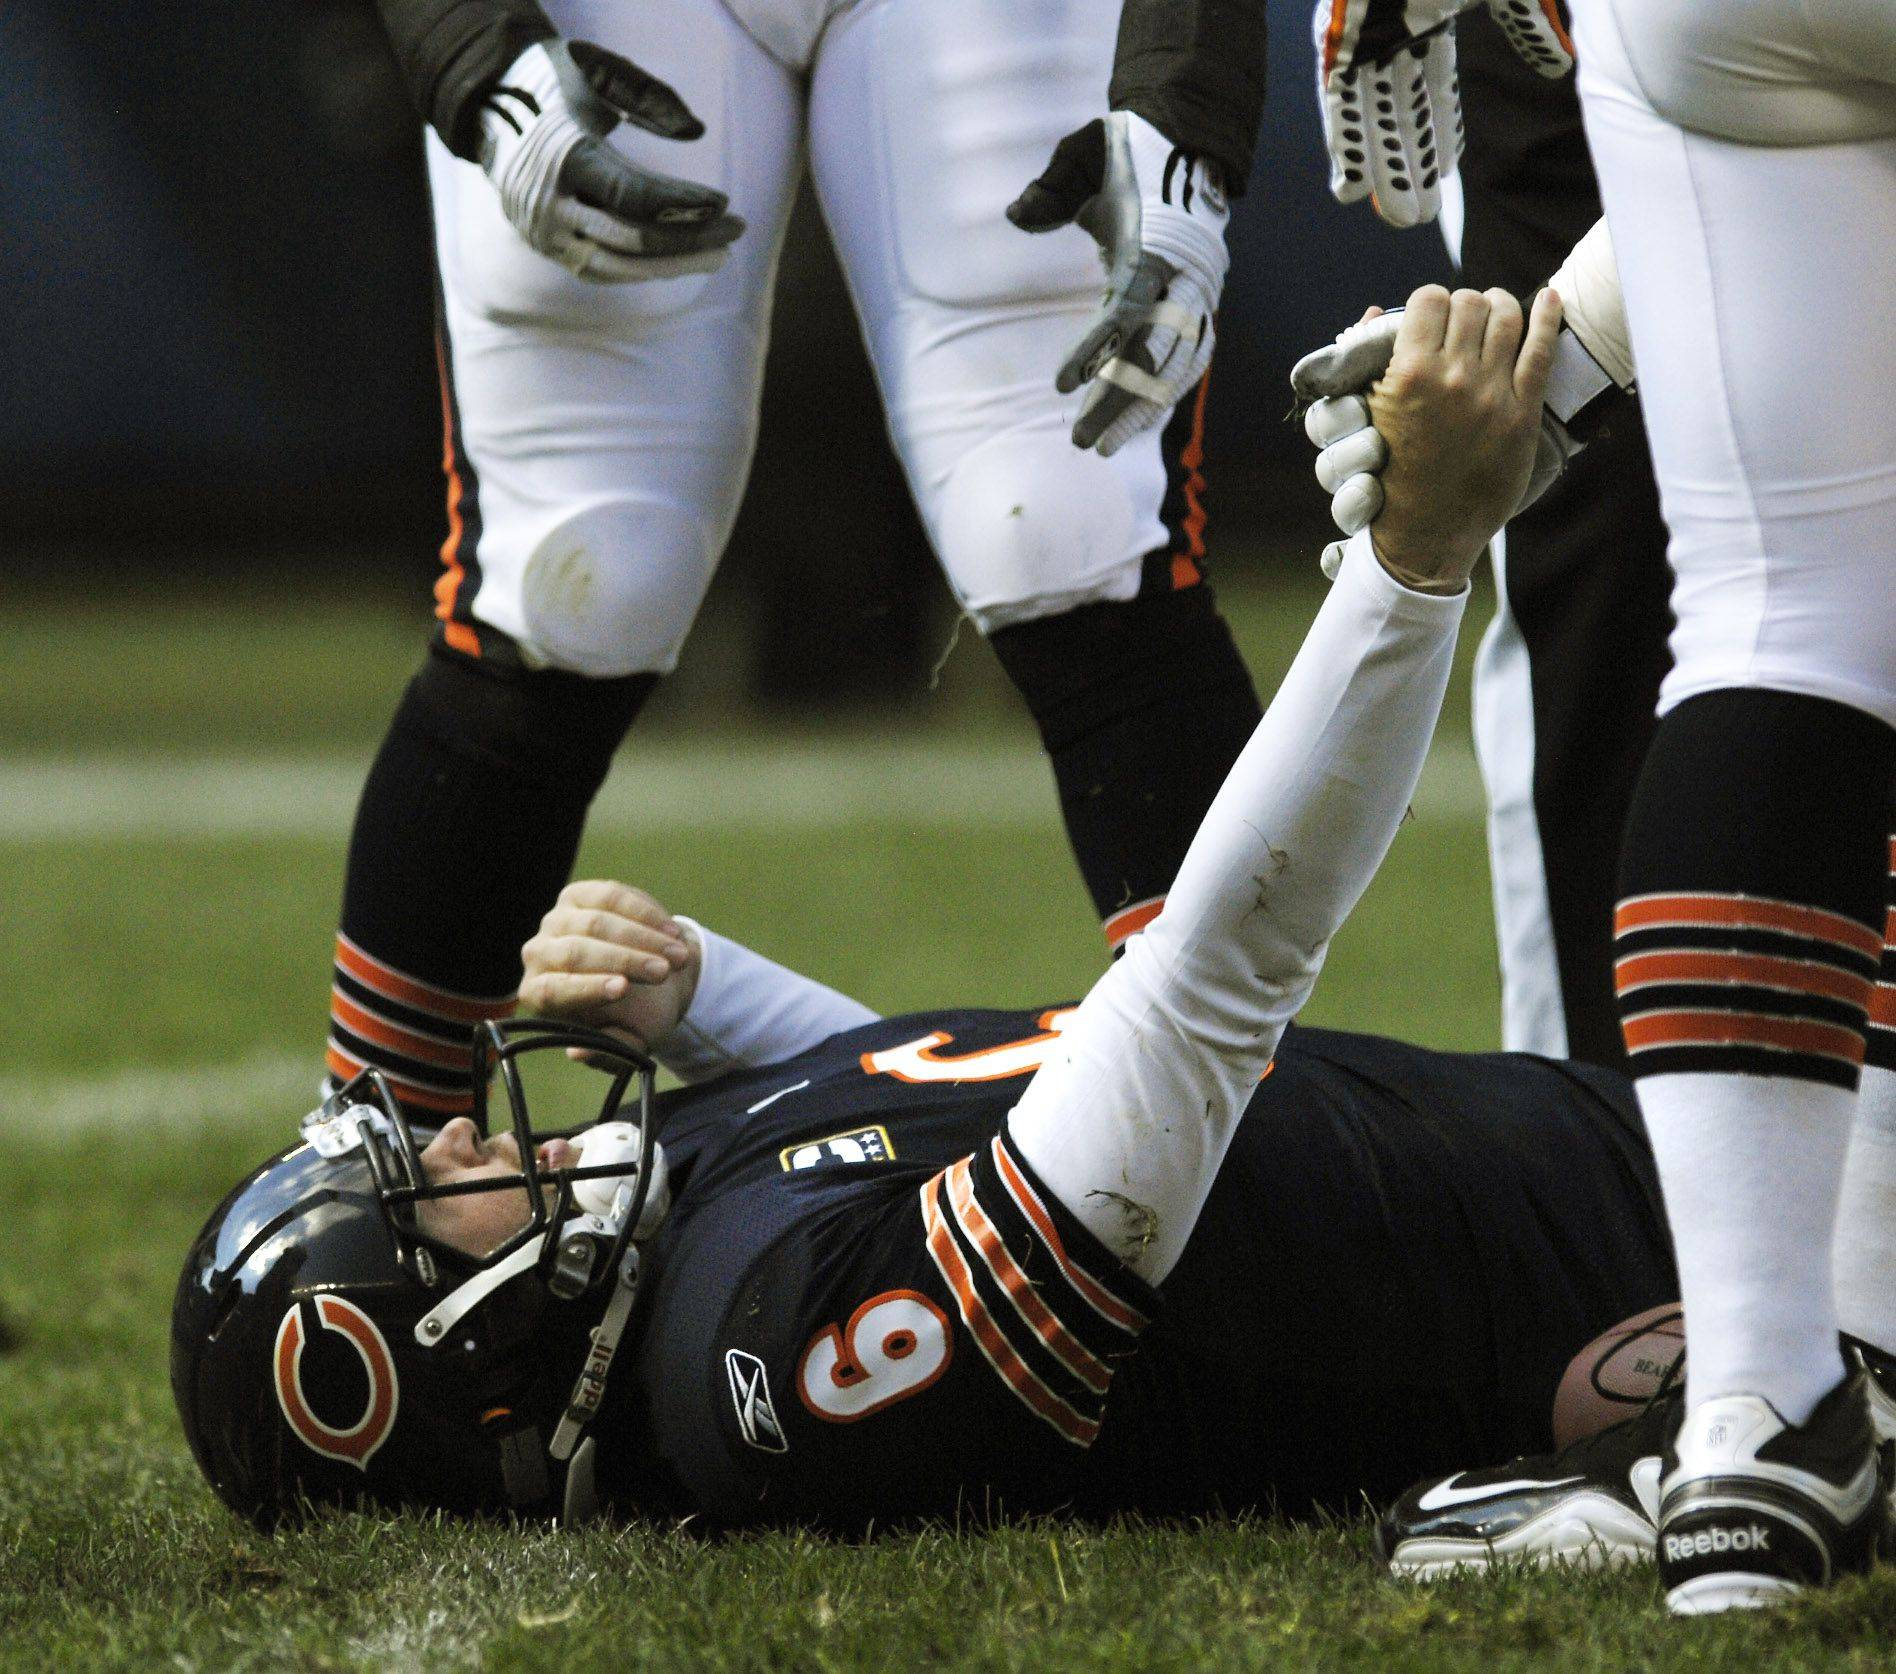 Chicago Bears quarterback Jay Cutler is helped up after a sack in the first half against the Washington Redskins.